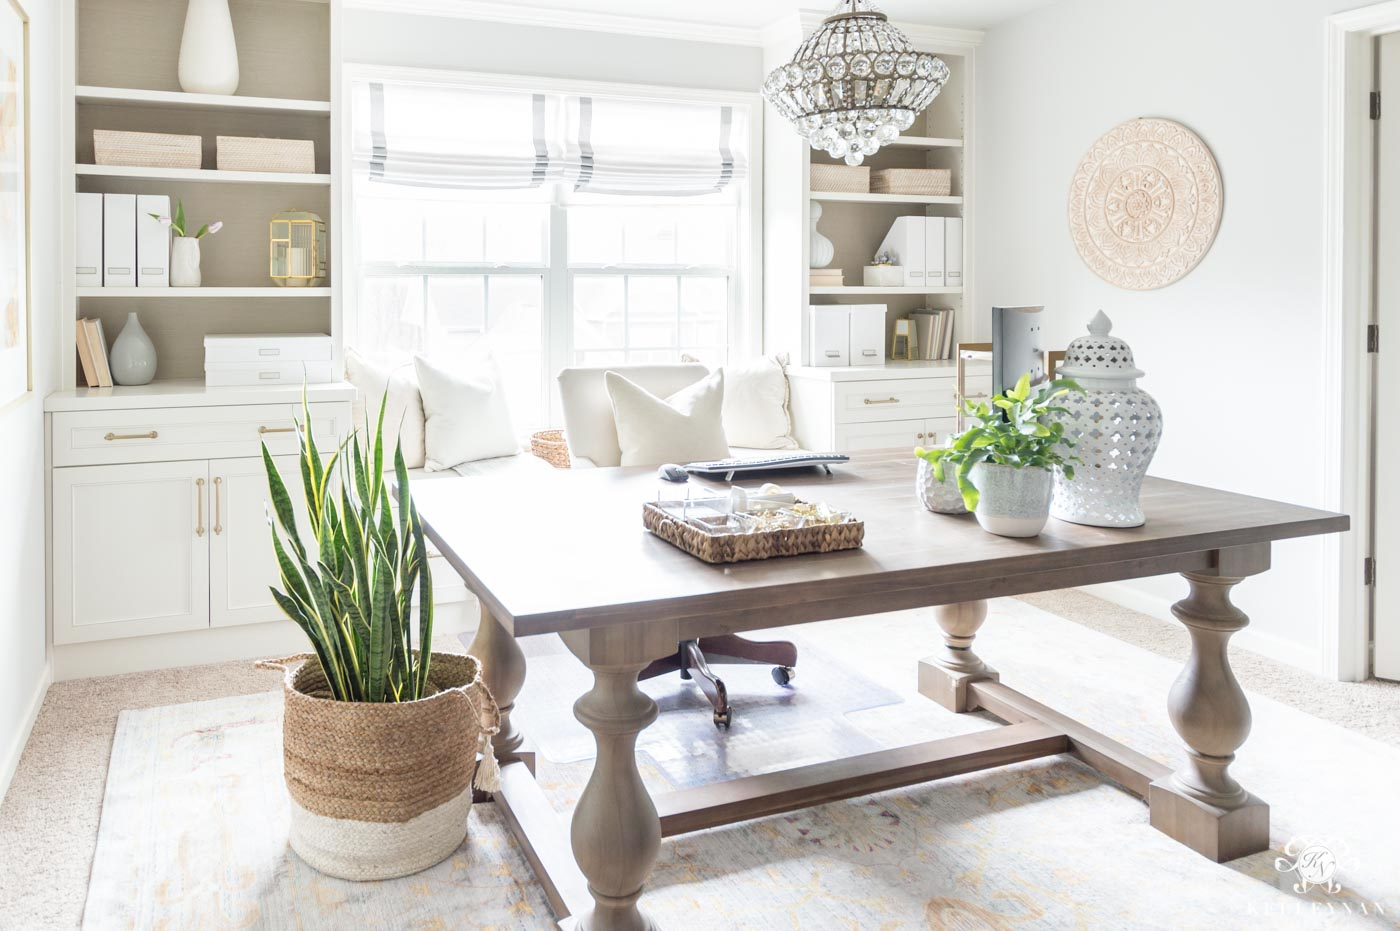 Home office decor ideas for spring and summer